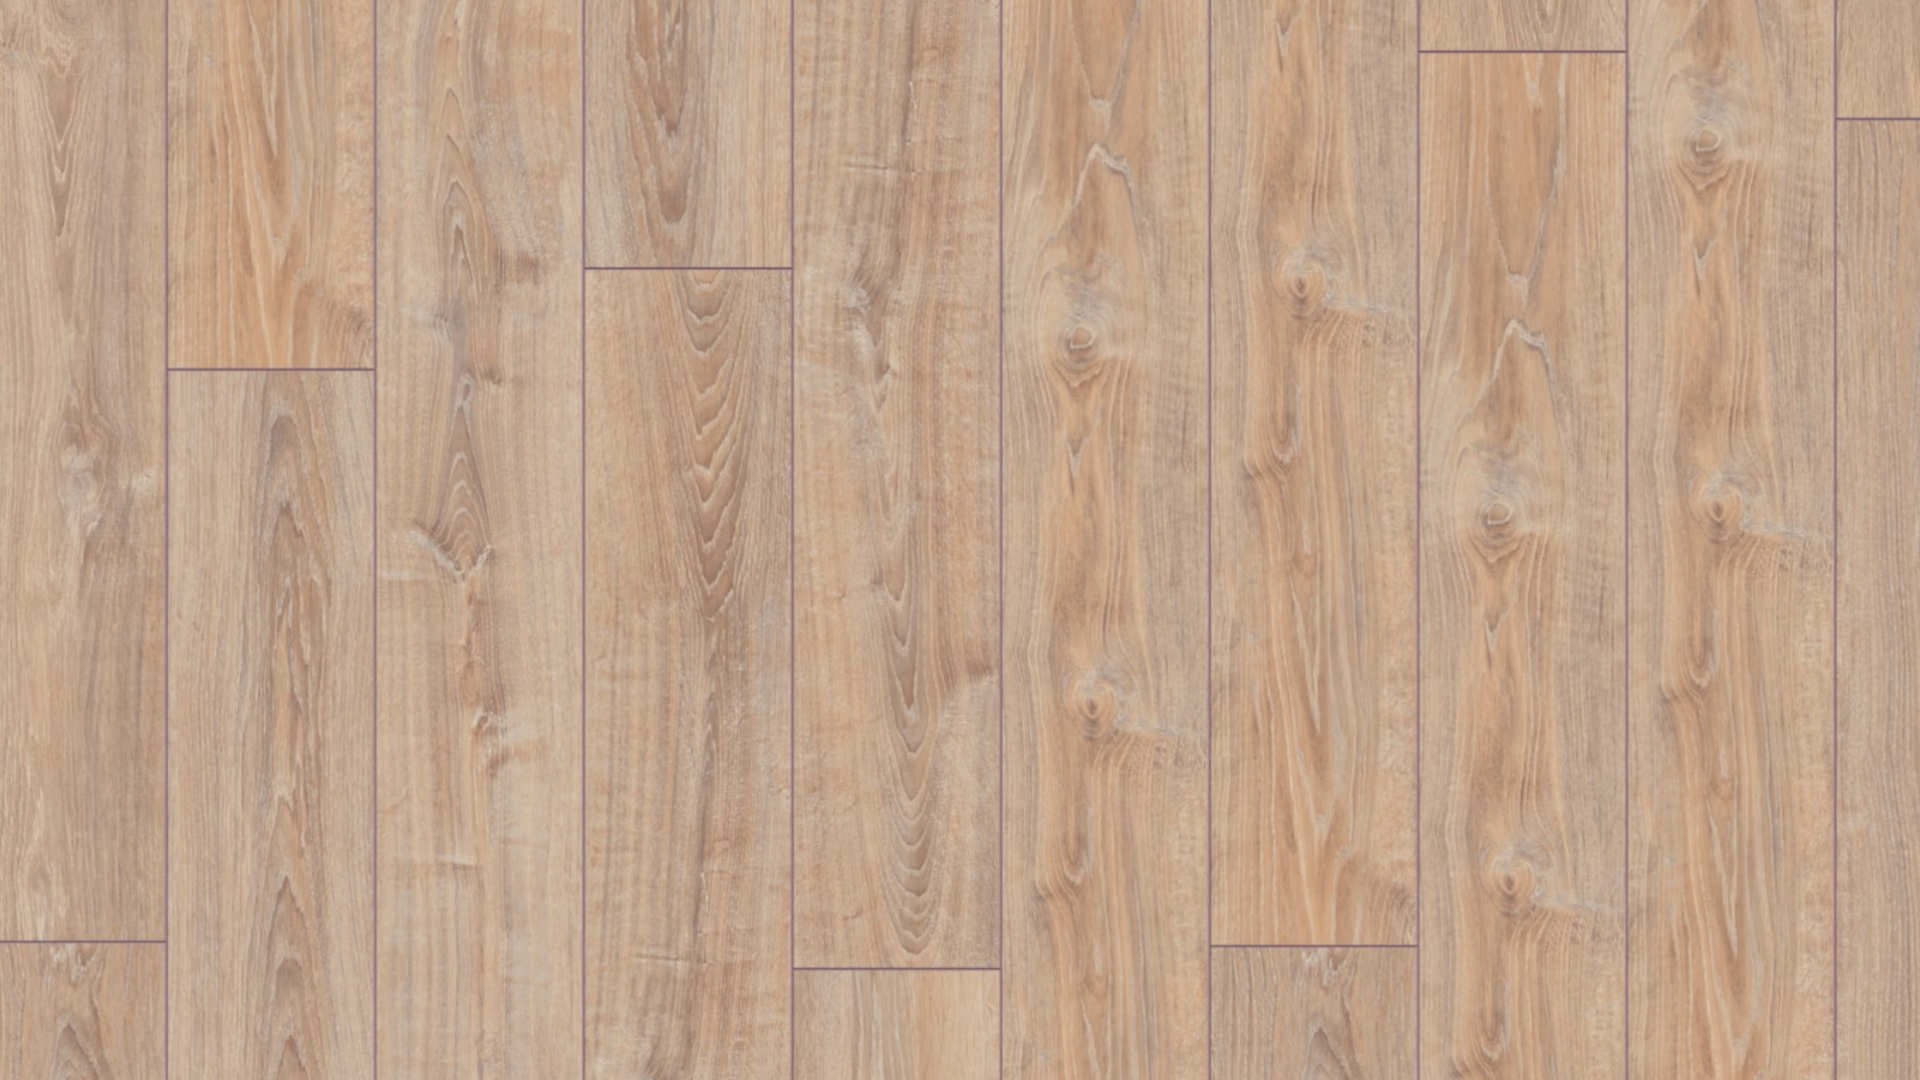 Bodenbeläge Laminat 2 131qm Whitewashed Oak 8mm Exquisit Laminat Kronotex